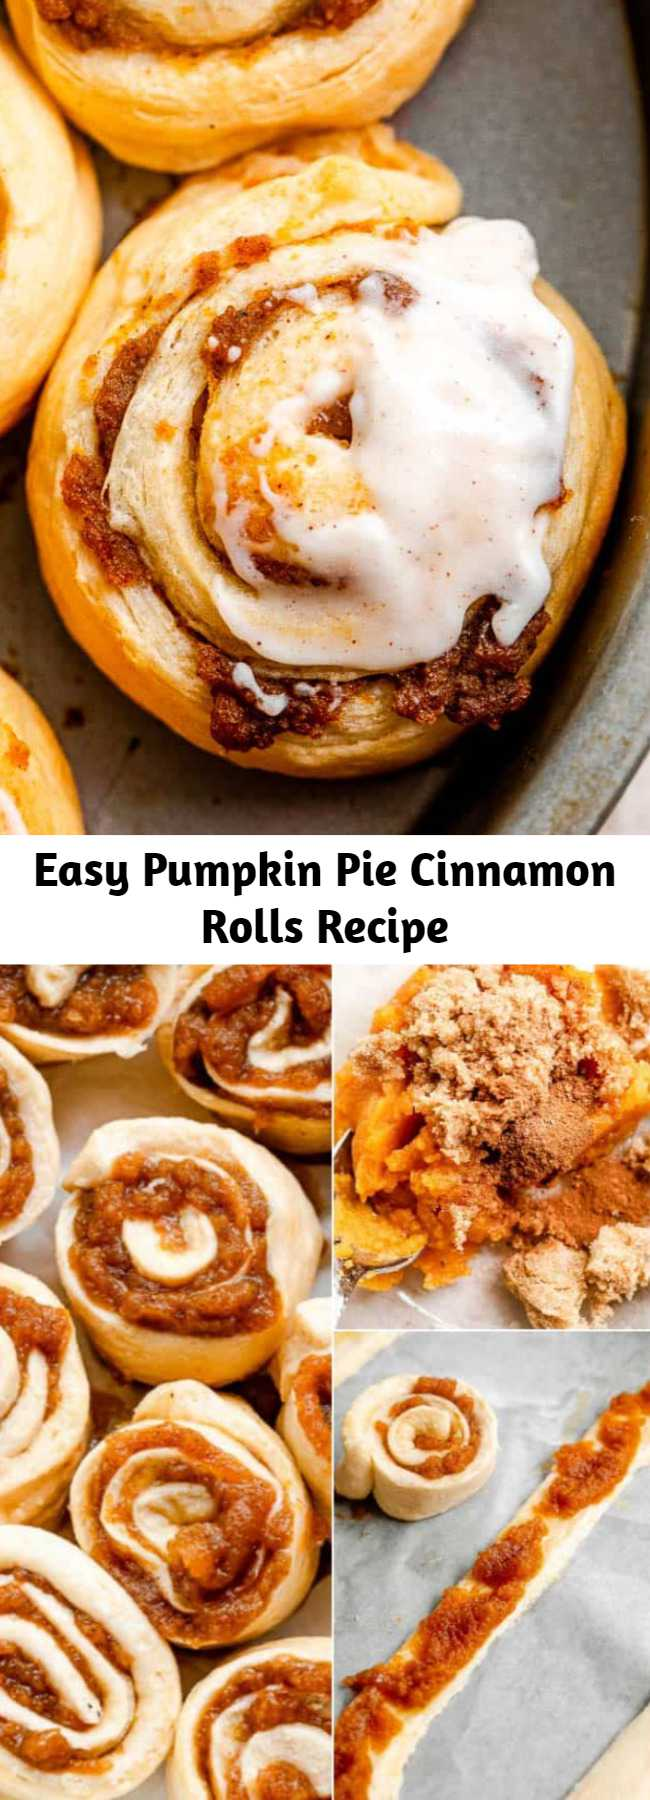 Easy Pumpkin Pie Cinnamon Rolls Recipe - These Pumpkin Pie Cinnamon Rolls are prepared with a tasty pumpkin filling and an incredible pumpkin pie spice cream cheese frosting! They're easy to make in just 30 minutes with refrigerated crescent dough.